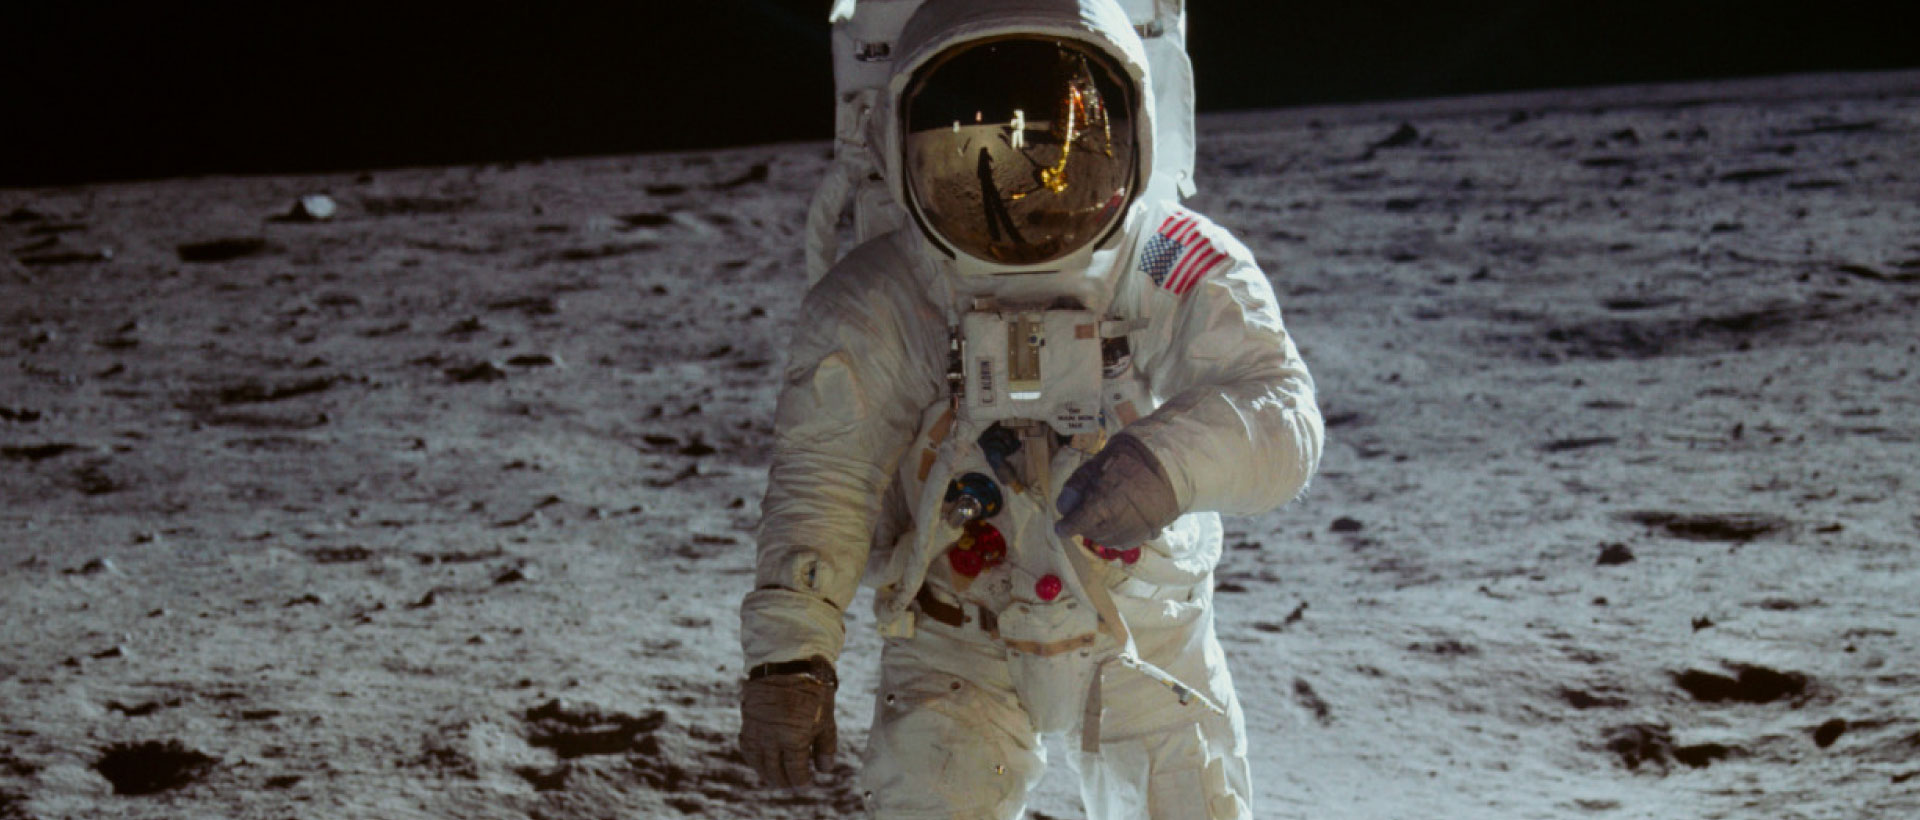 Where Were You? 'Apollo 11' Takes Us Back to 1969